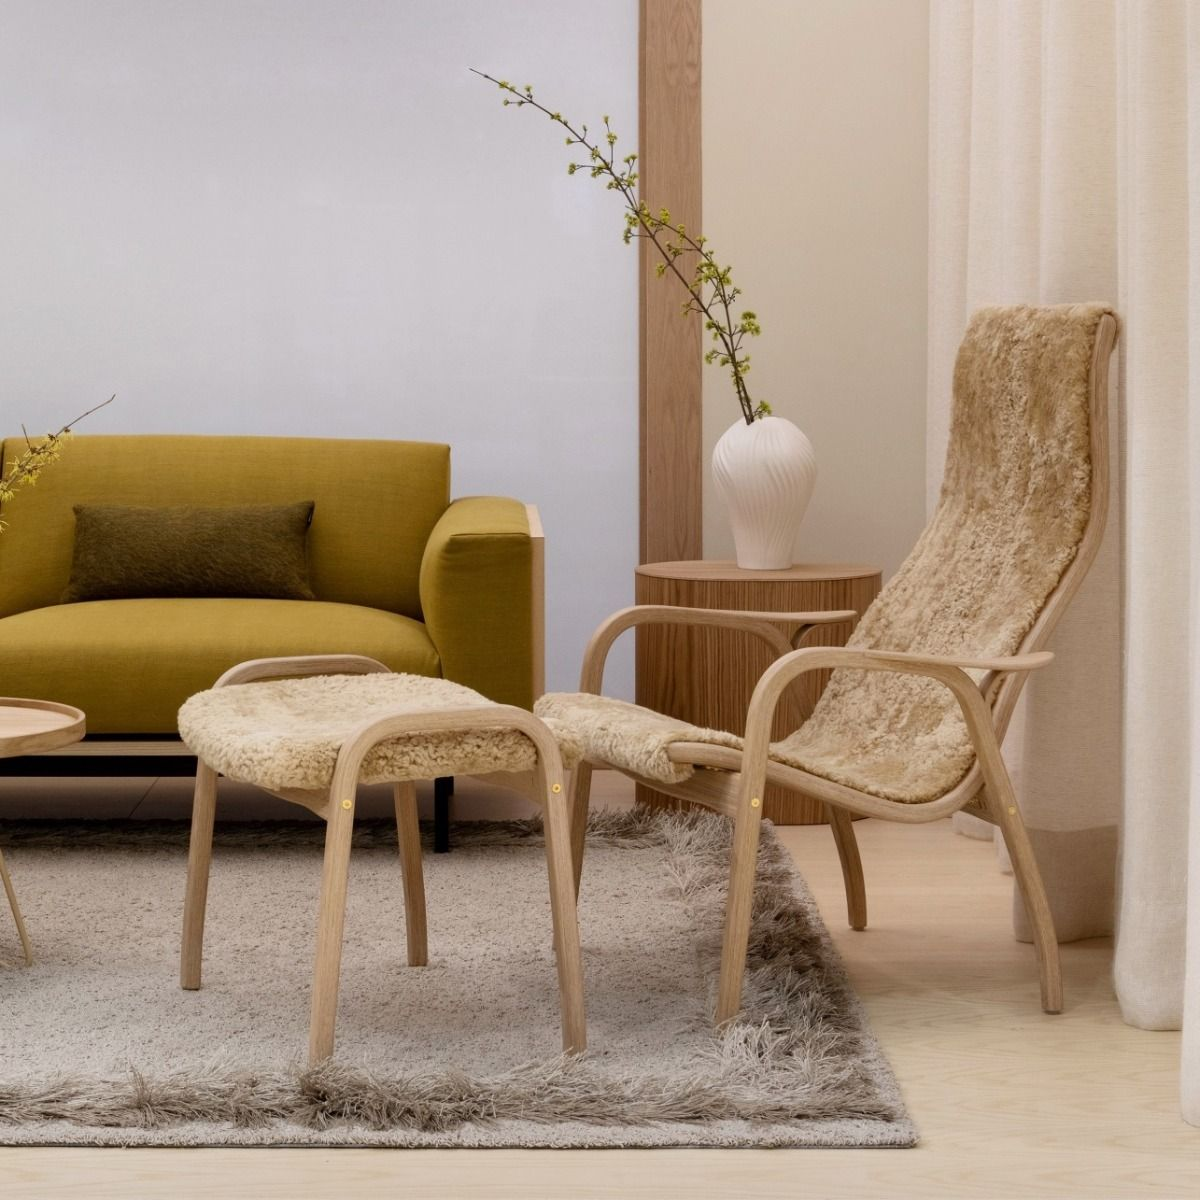 Swedese Lamino Easy Chair - Anniversary Edition next to a sofa